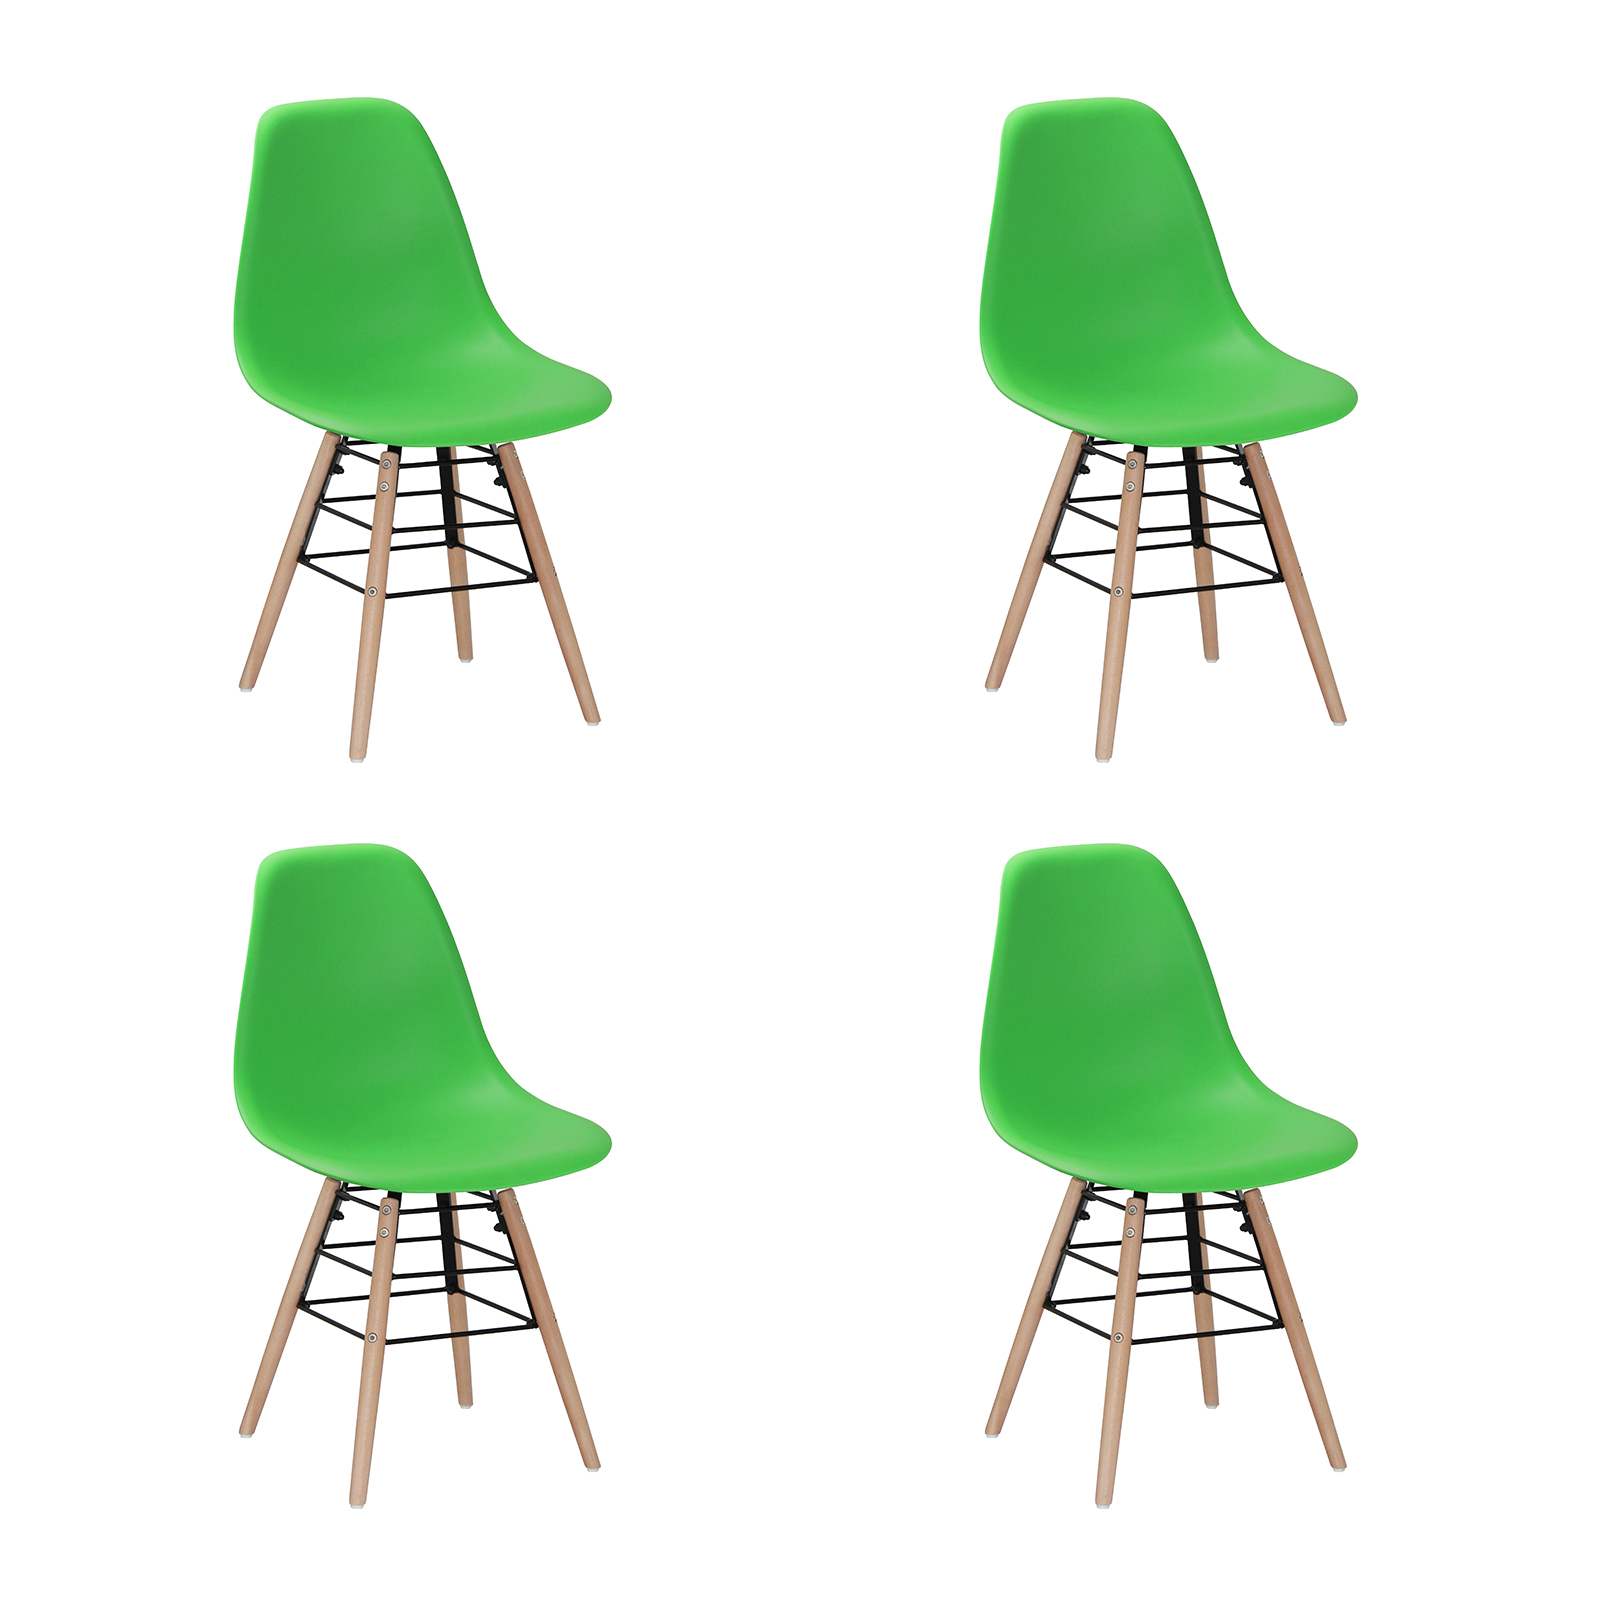 Classic Wooden Sofa Set, River Eames Inspired Bright Coloured Green Chairs Dining Chairs Fads